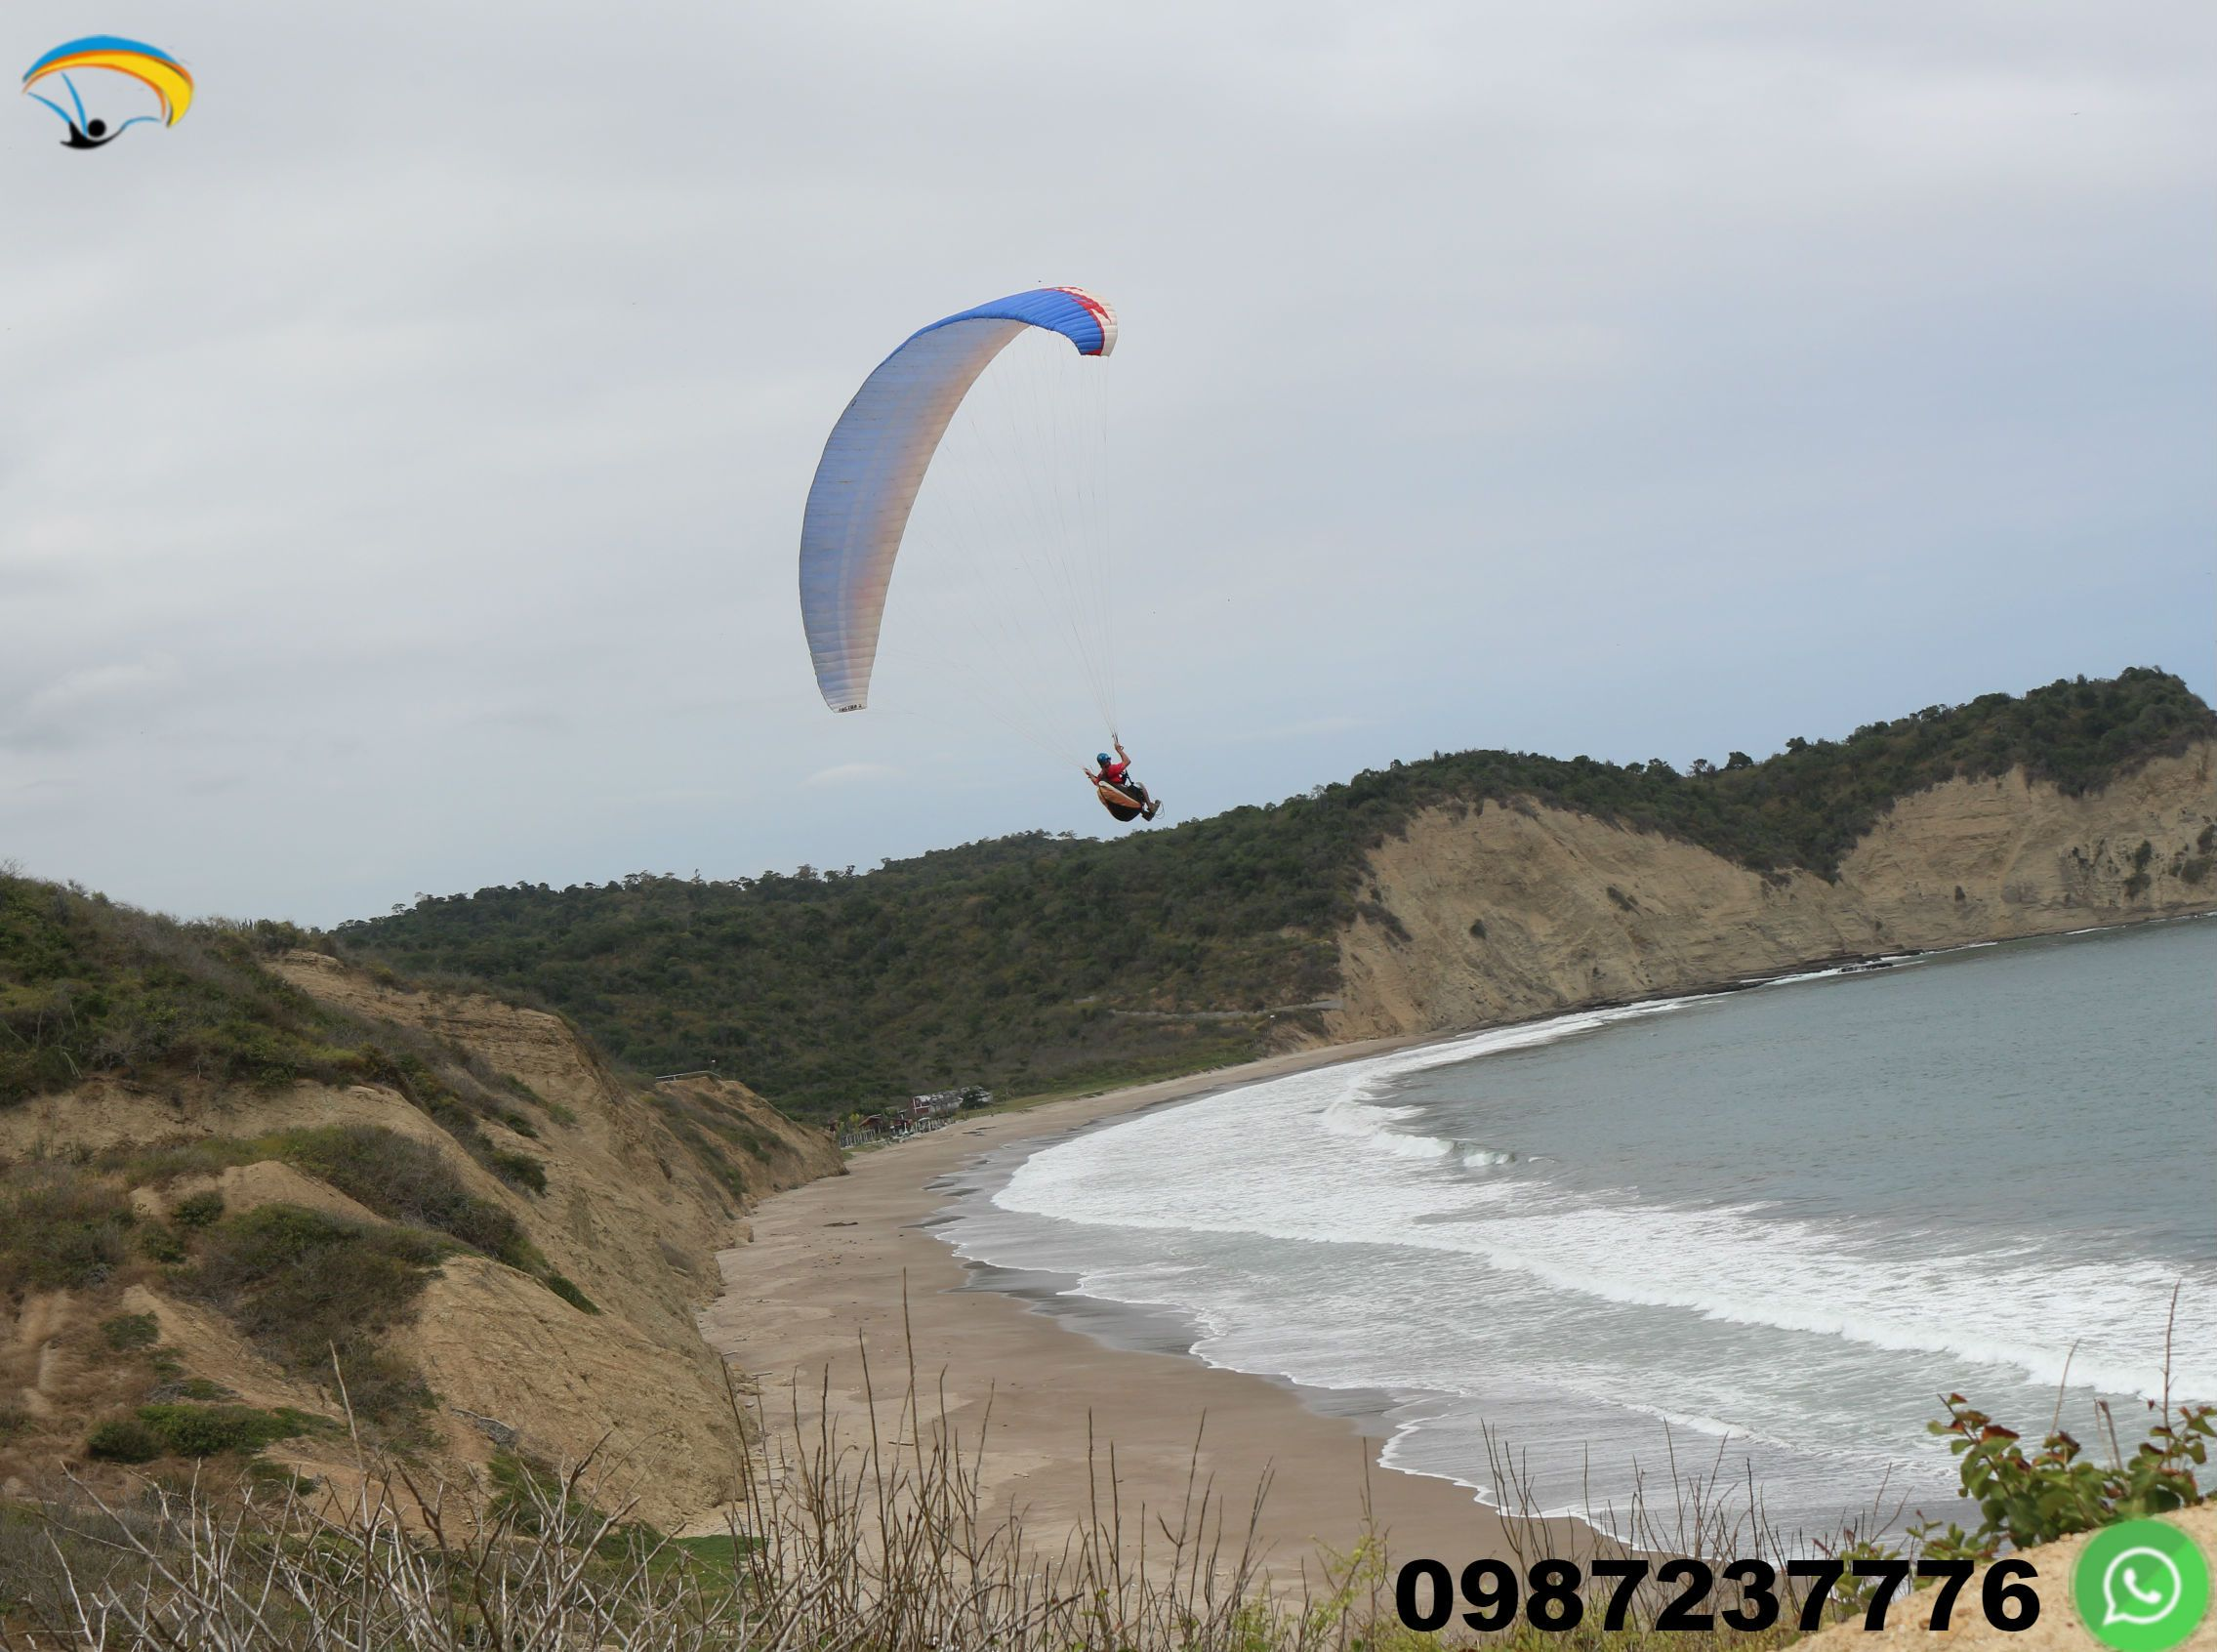 Paragliding Courses Puerto Lopez Ecuador You can learn this sport beginning with the first days after the theory and practice.